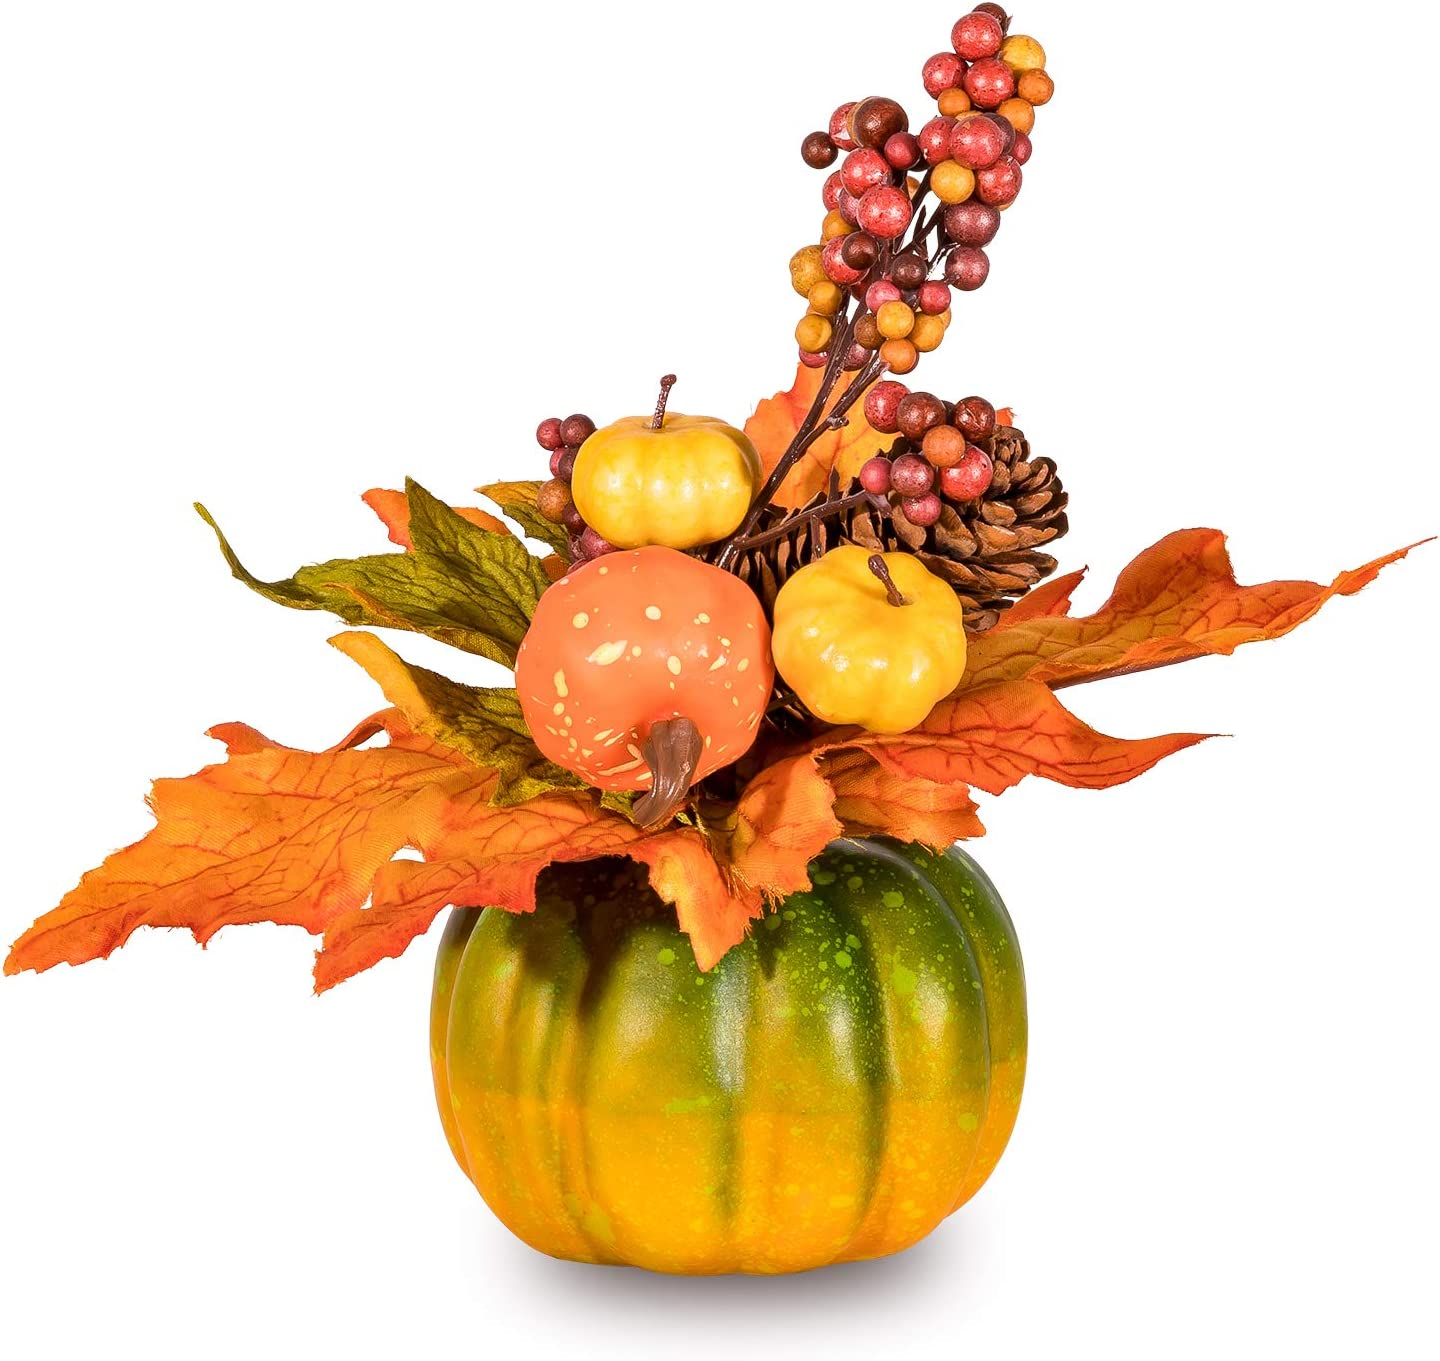 Whaline Artificial Pumpkin Ornament Fall Maple Leaf Pinecone Berry Set Decor Pumpkin Photography Table Centerpiece Props for Autumn Home Party Ornaments Store Halloween Table Decor